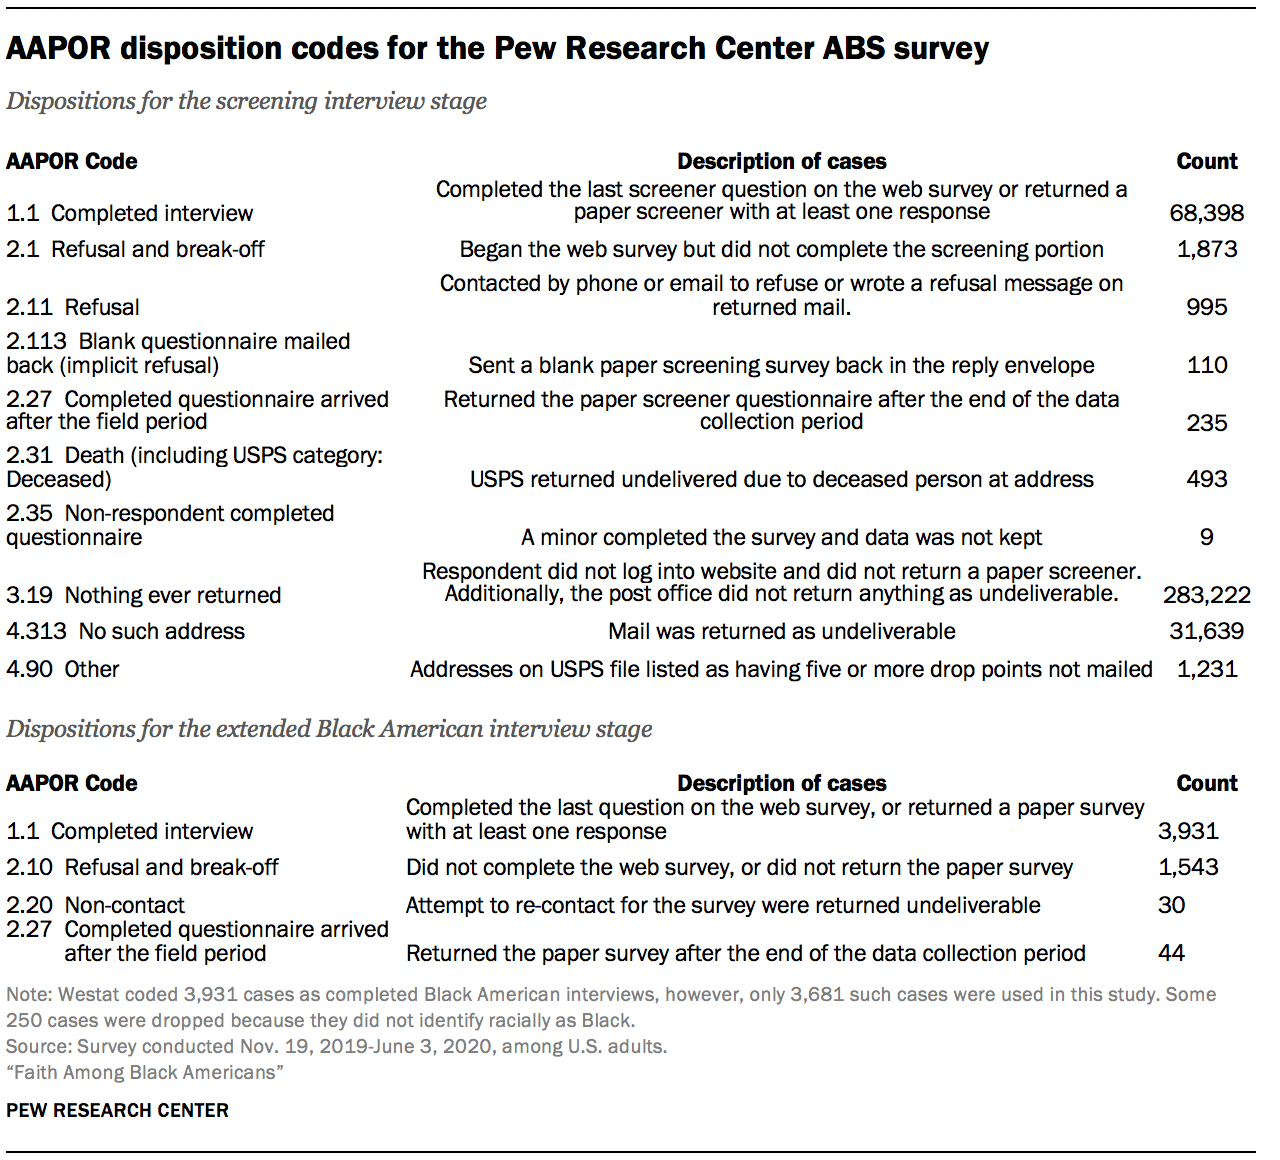 AAPOR disposition codes for the Pew Research Center ABS survey